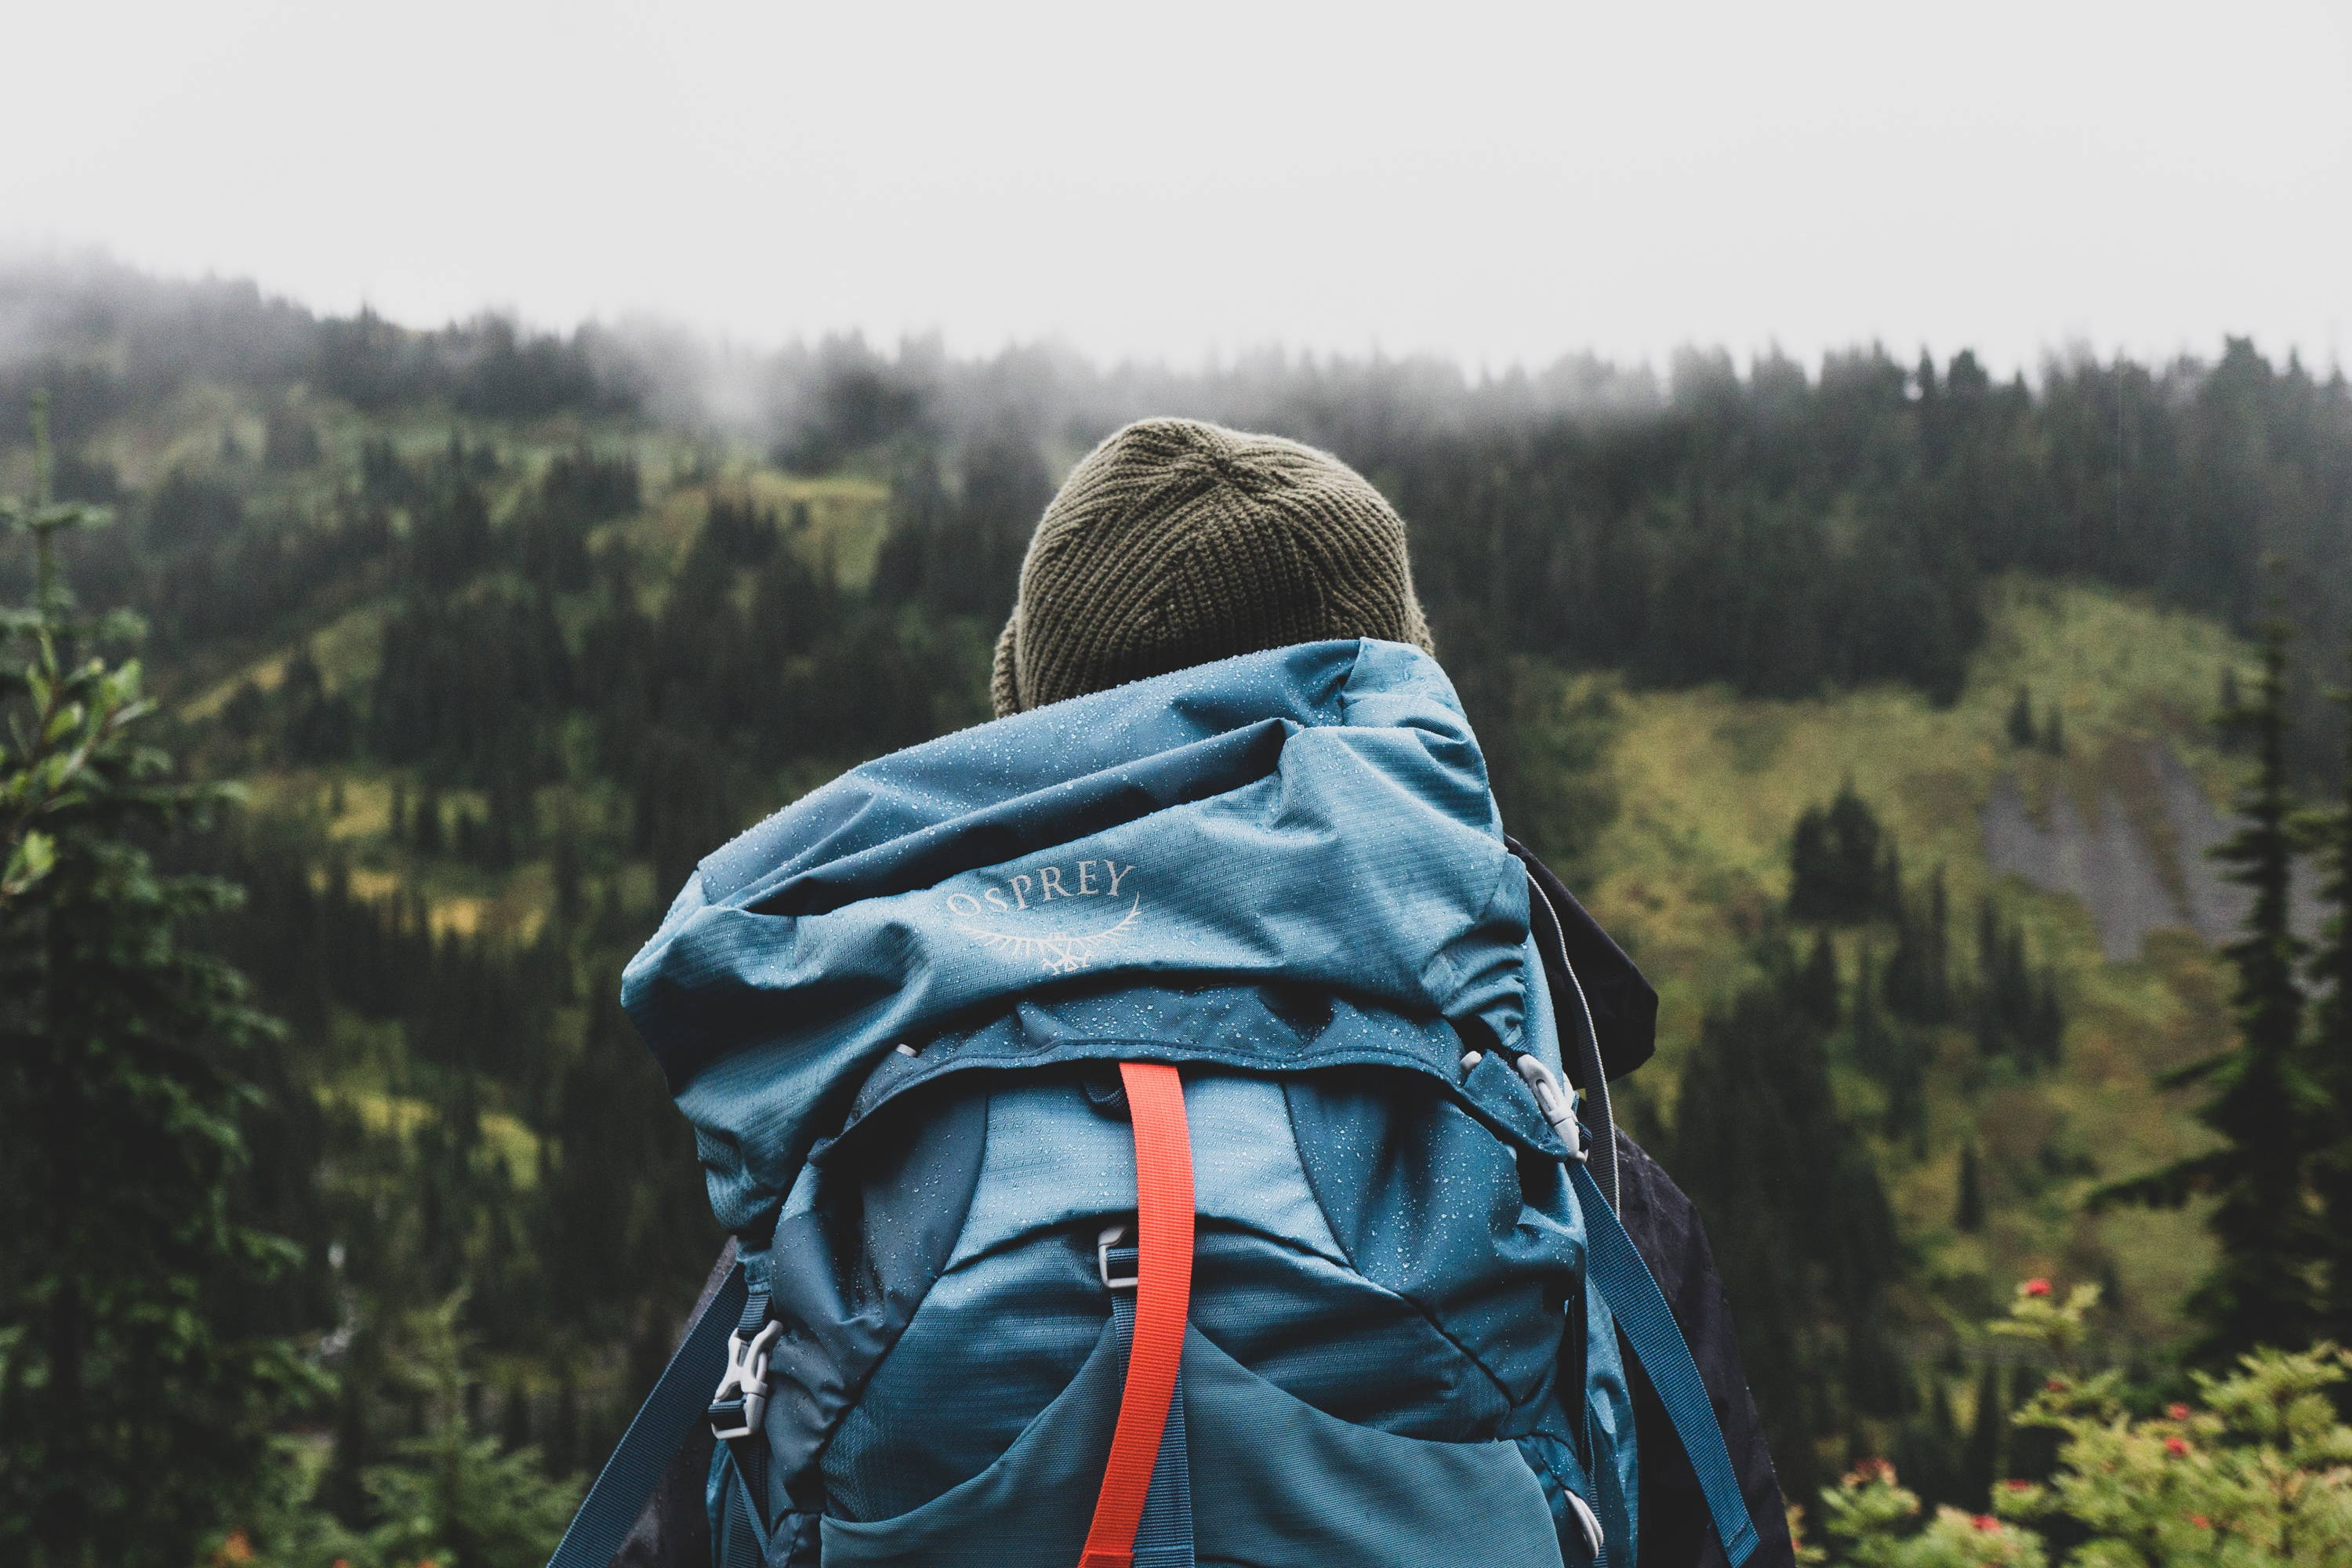 Best Backpacking Backpack: Why Osprey Packs are Superior. Blue Osprey backpack sits on back of hiker with forest ahead.